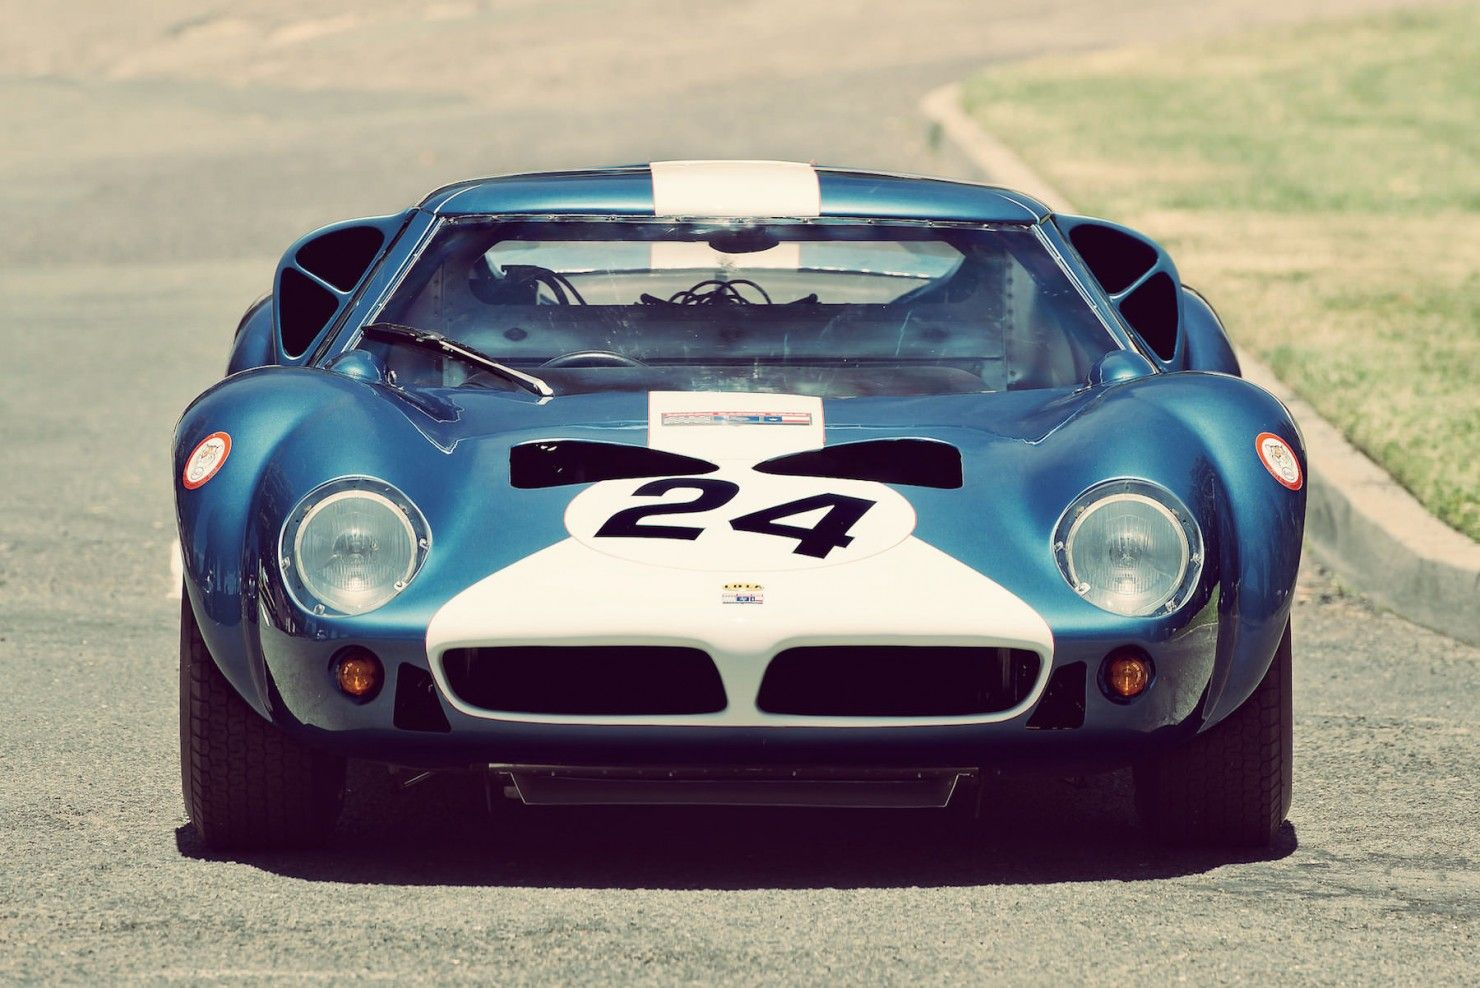 107 best Lola images on Pinterest | Race cars, Rally car and Motosport